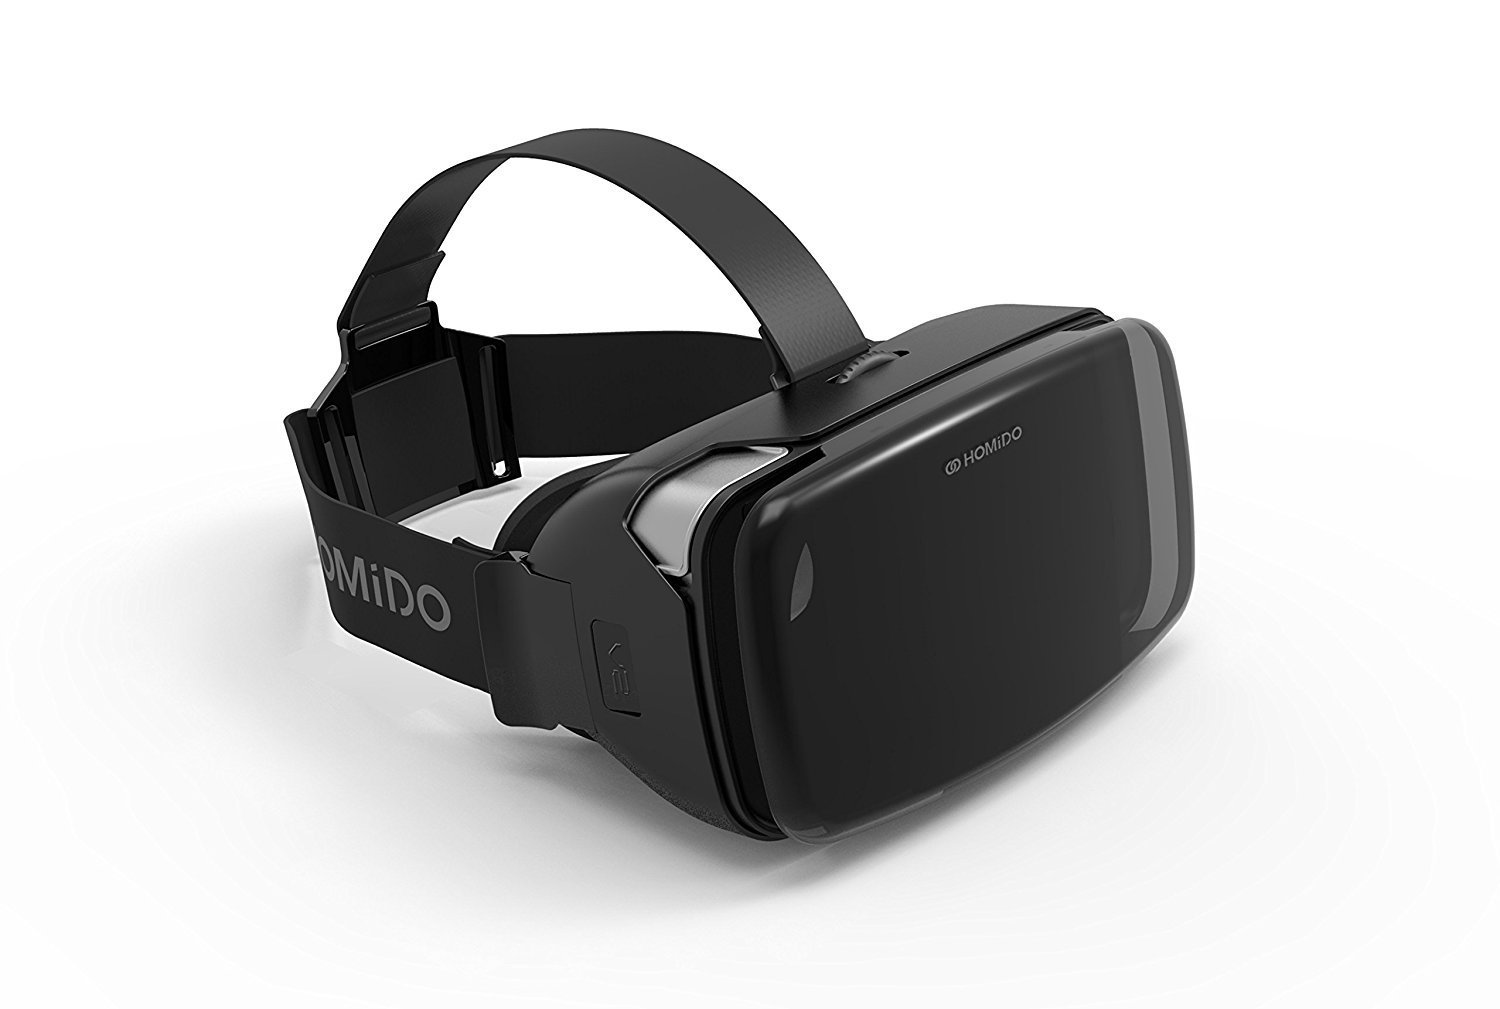 Homido VR headset for people with glasses